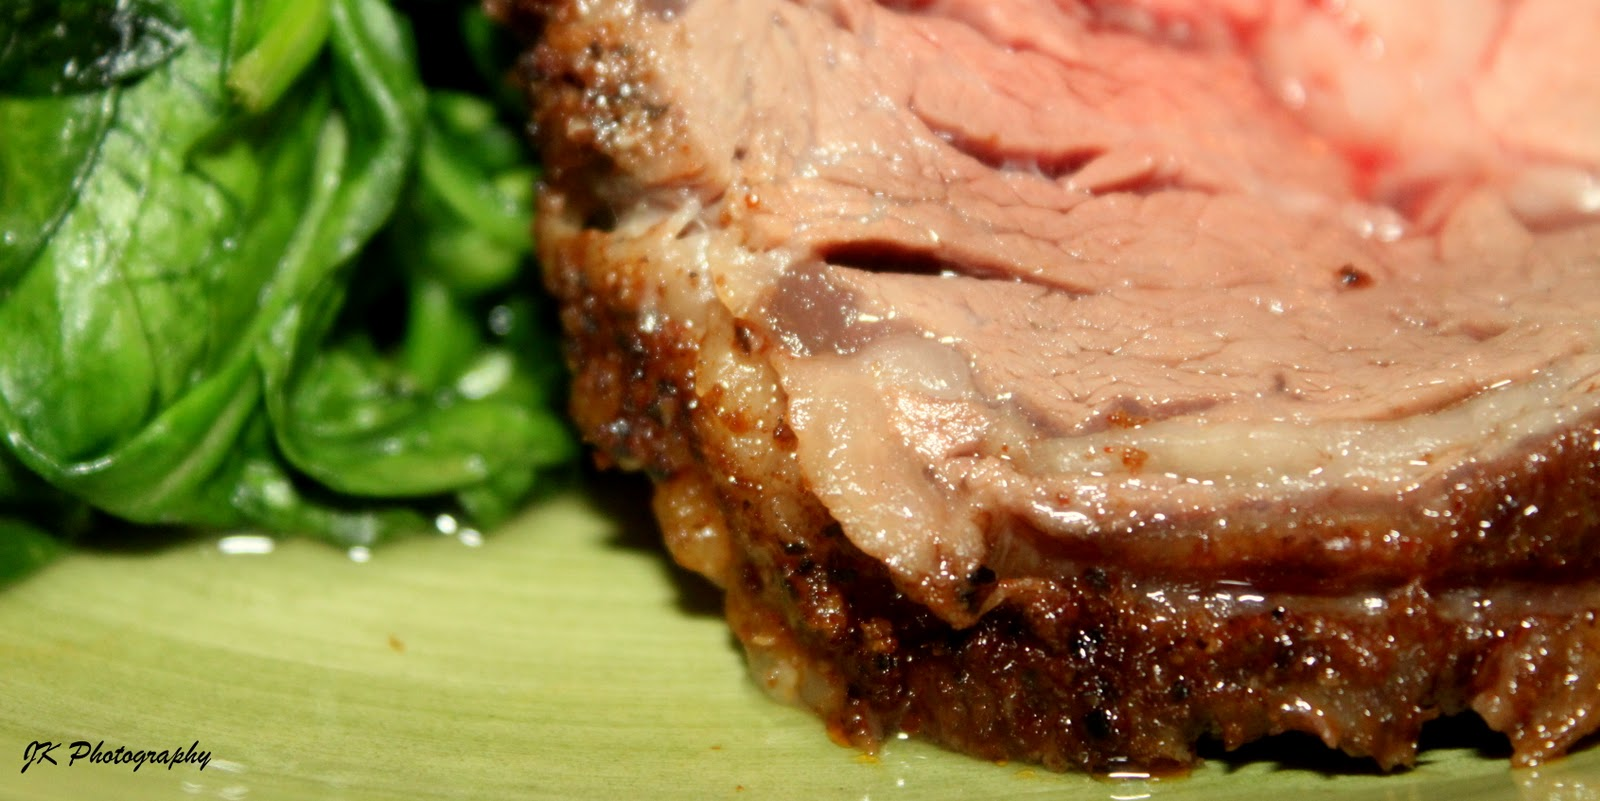 Crafty Life And Style: Tasty Tuesday: Oven Roasted Prime Rib